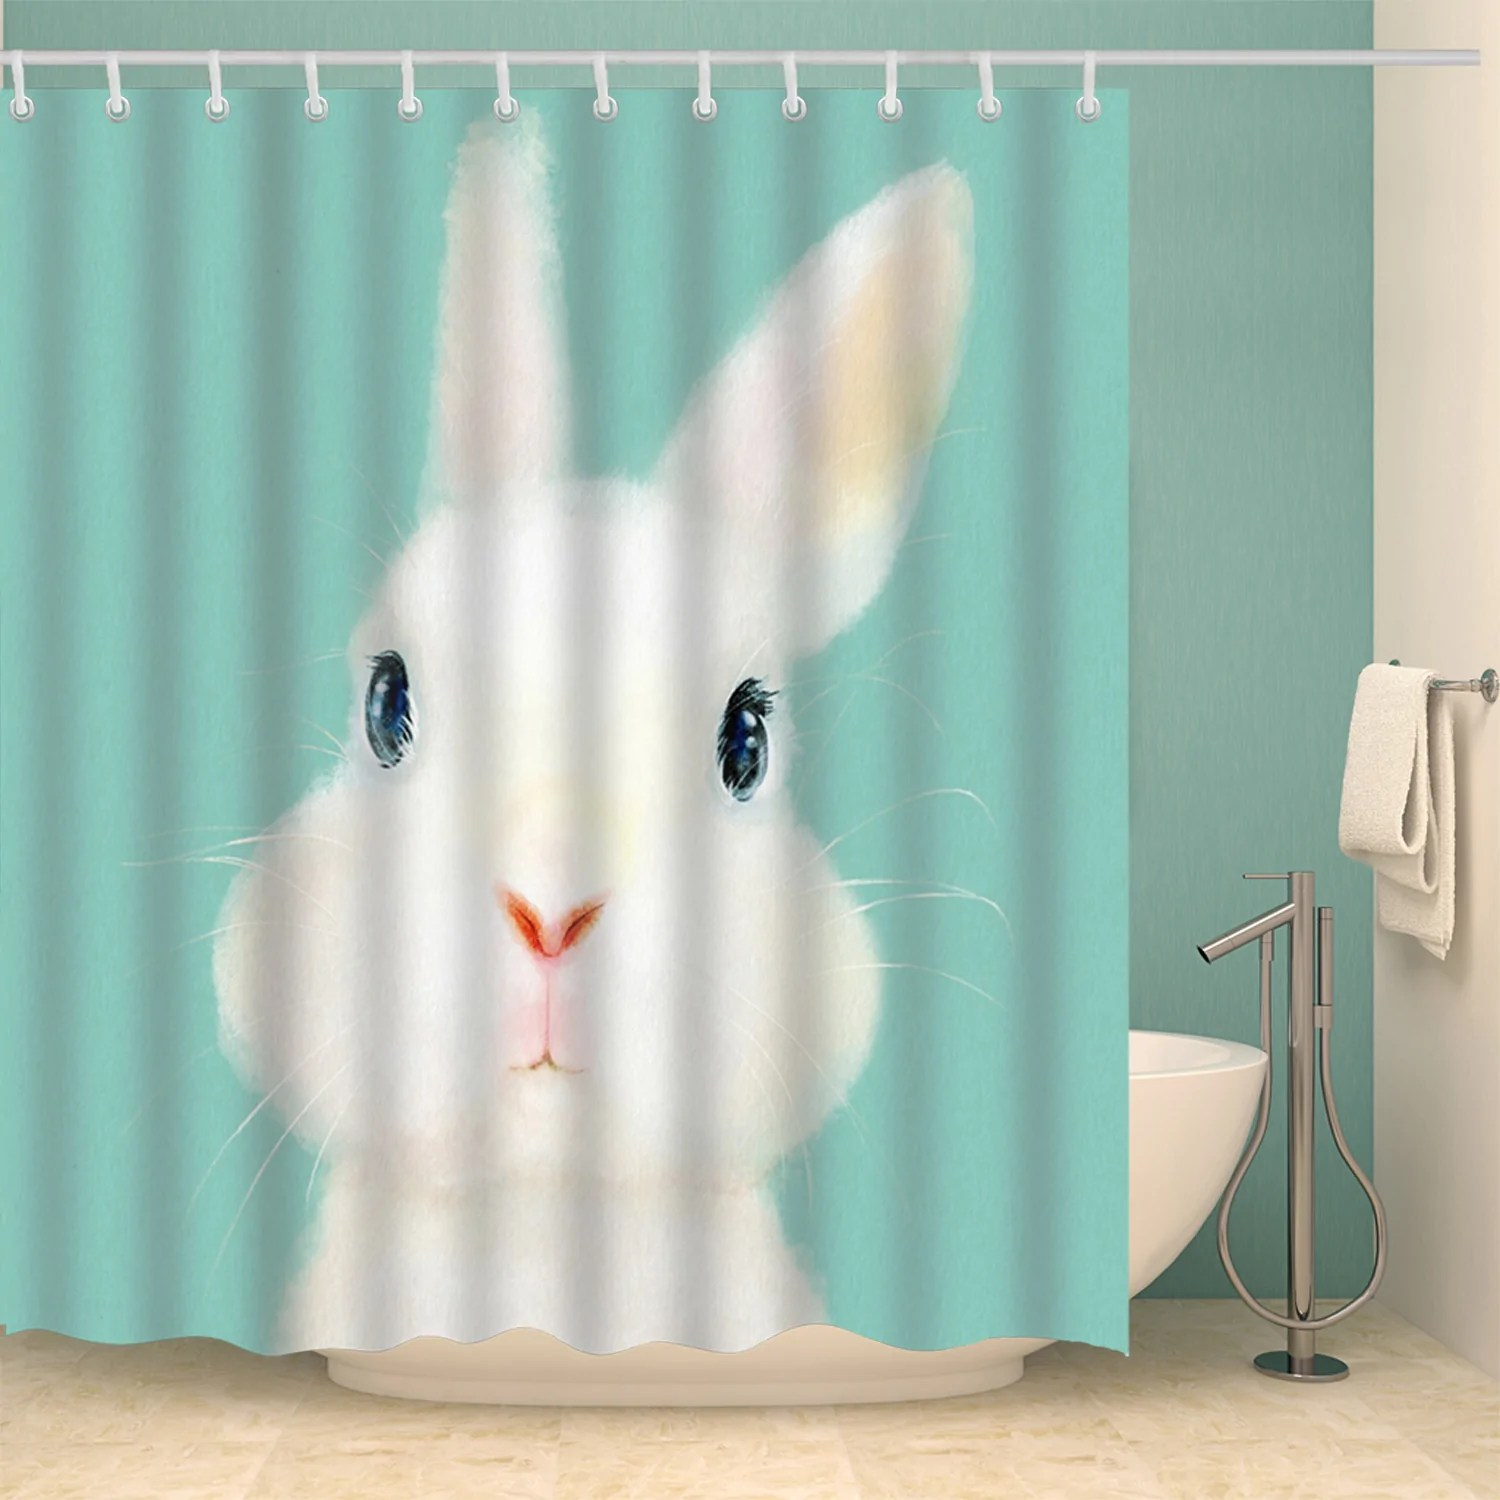 Cute Girly Shower Curtains Shower Curtain Cute Jerusalem House